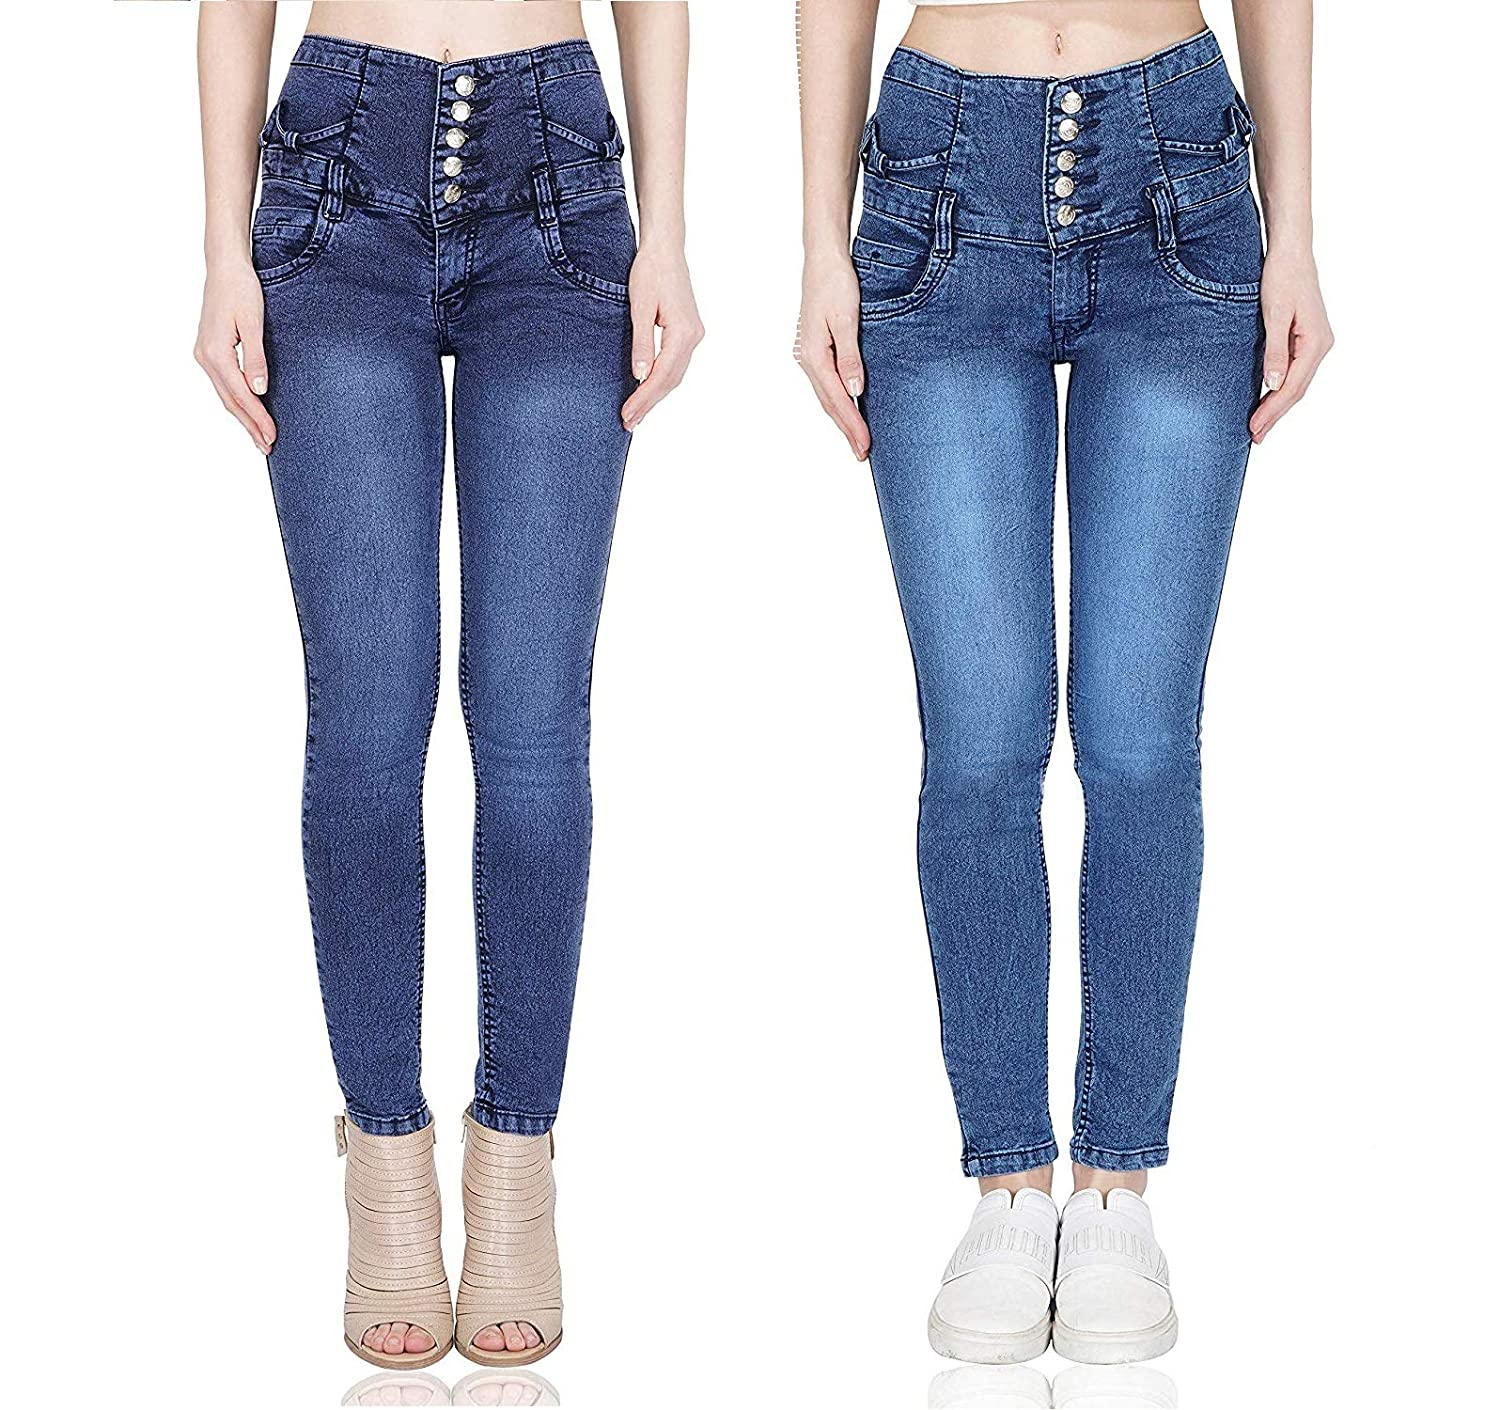 Buy Luxsis Women's Slim Fit Jeans (Pack of 2) at Amazon.in